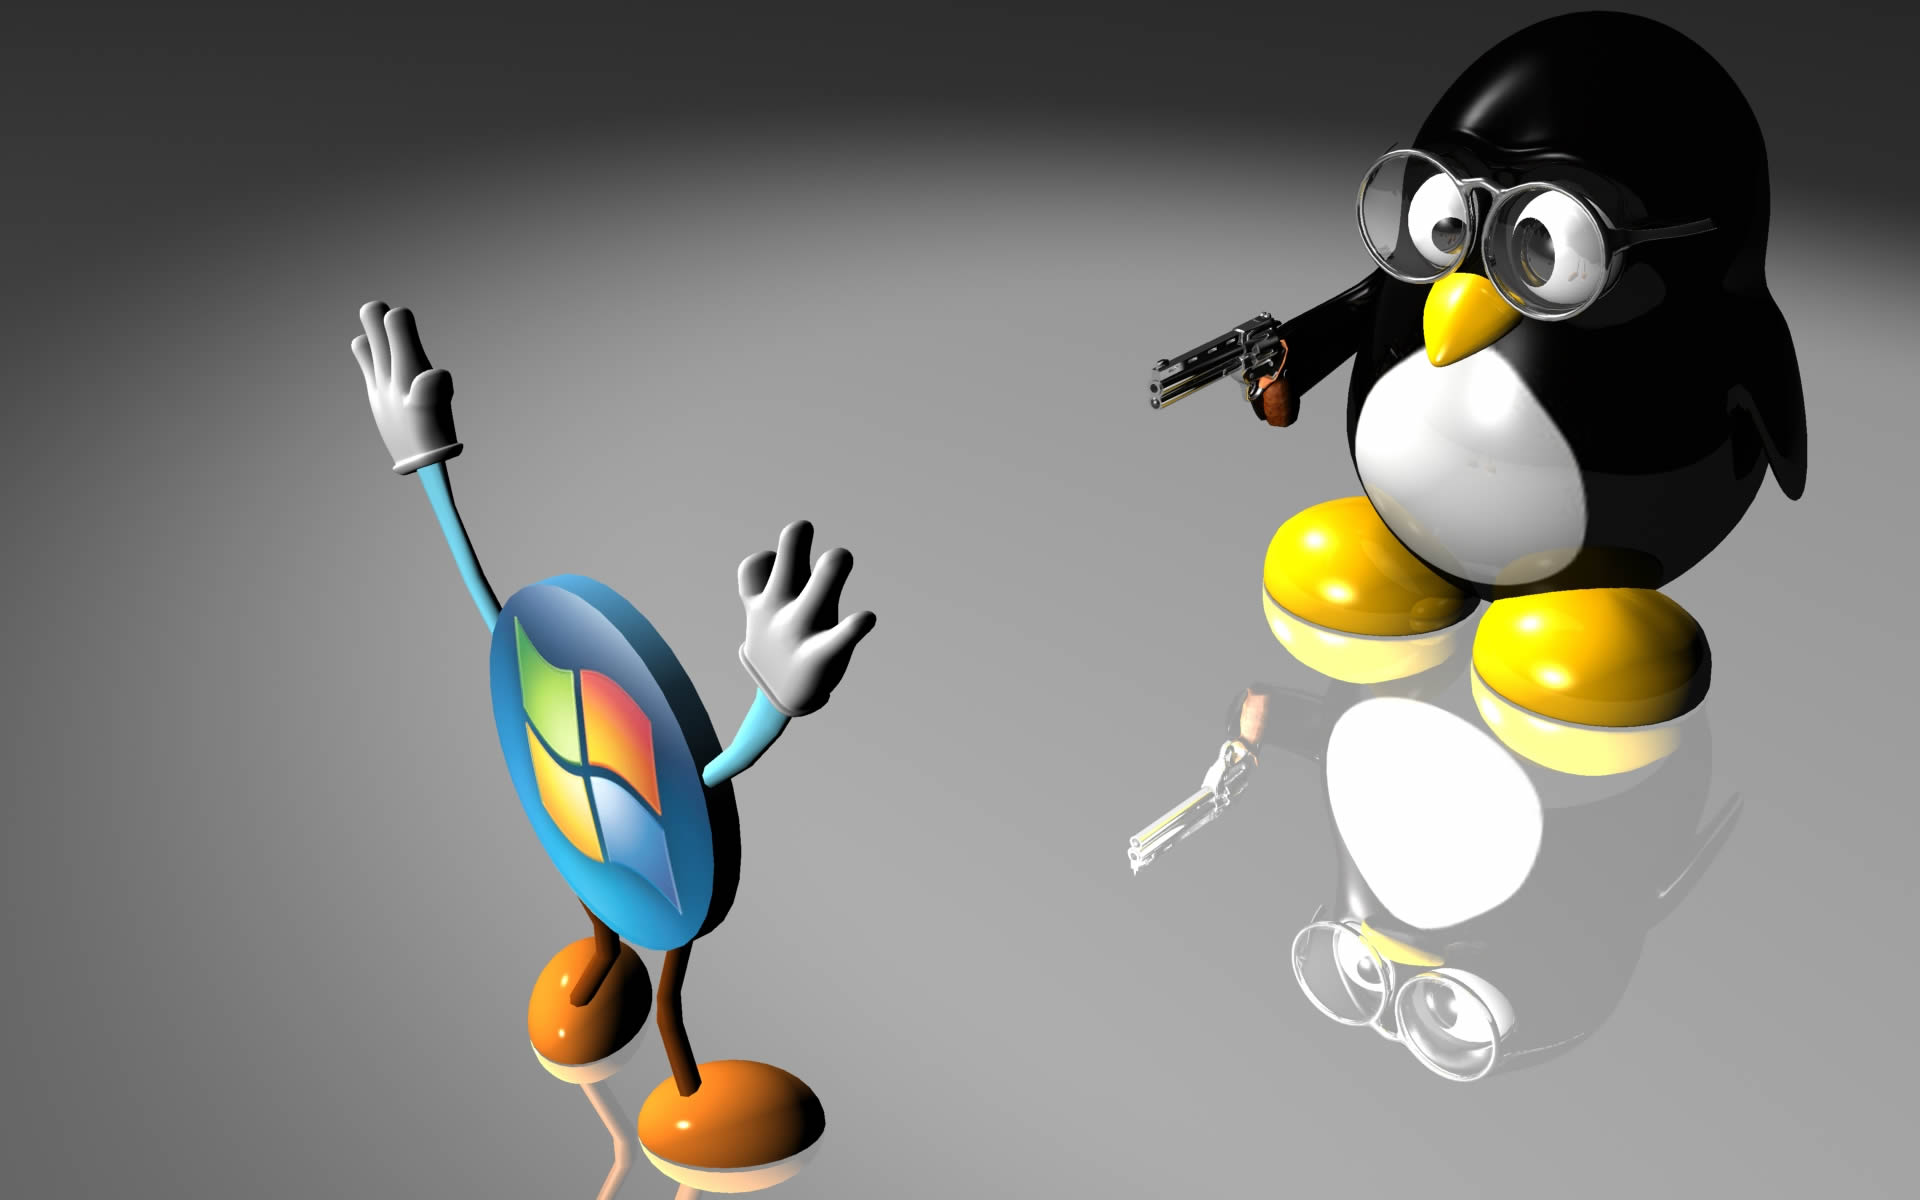 ... Linux wallpapers 15 ...